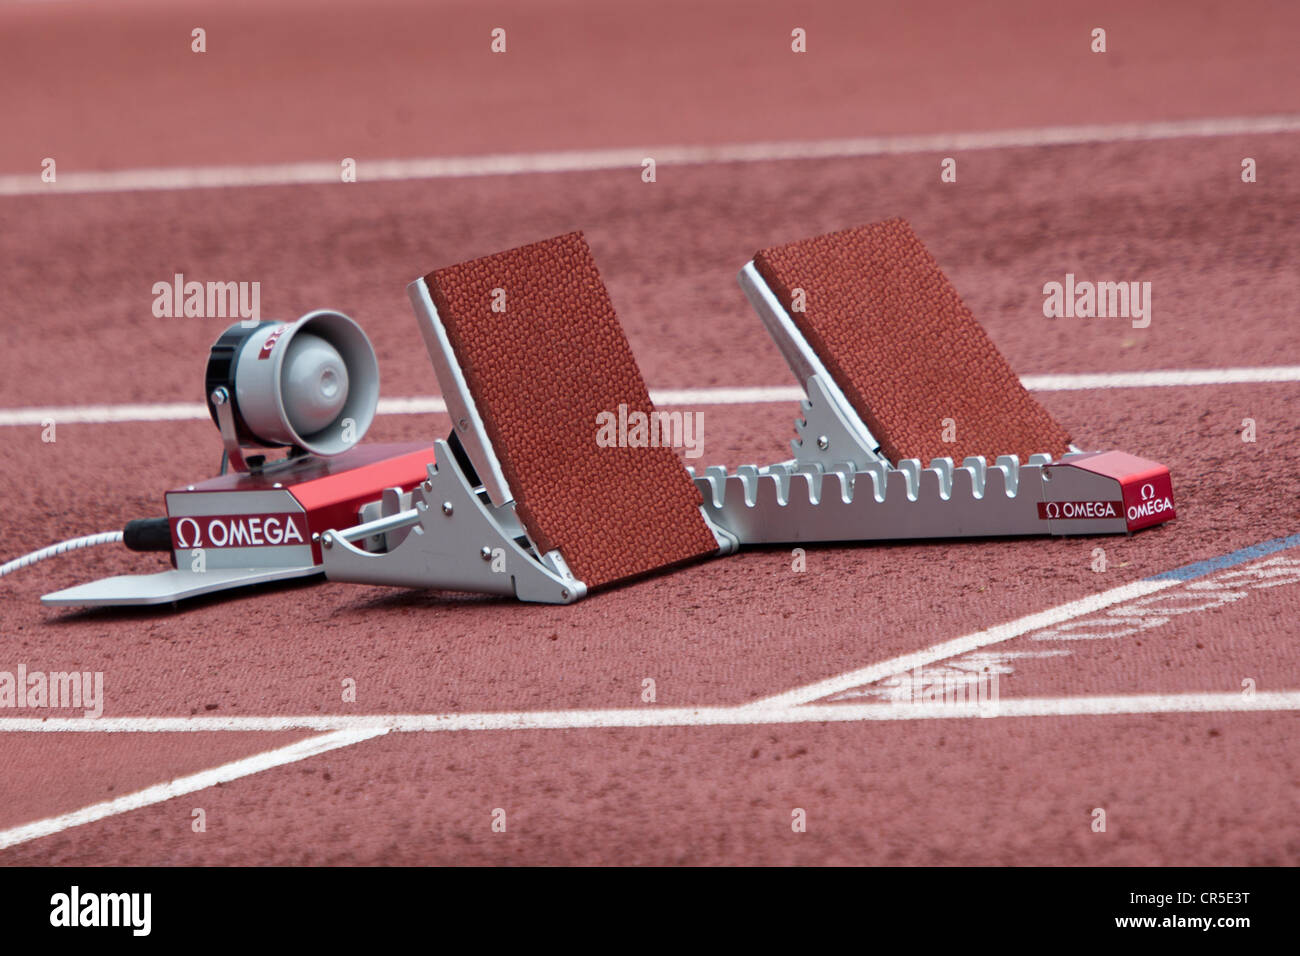 Empty track and field starting blocks. - Stock Image